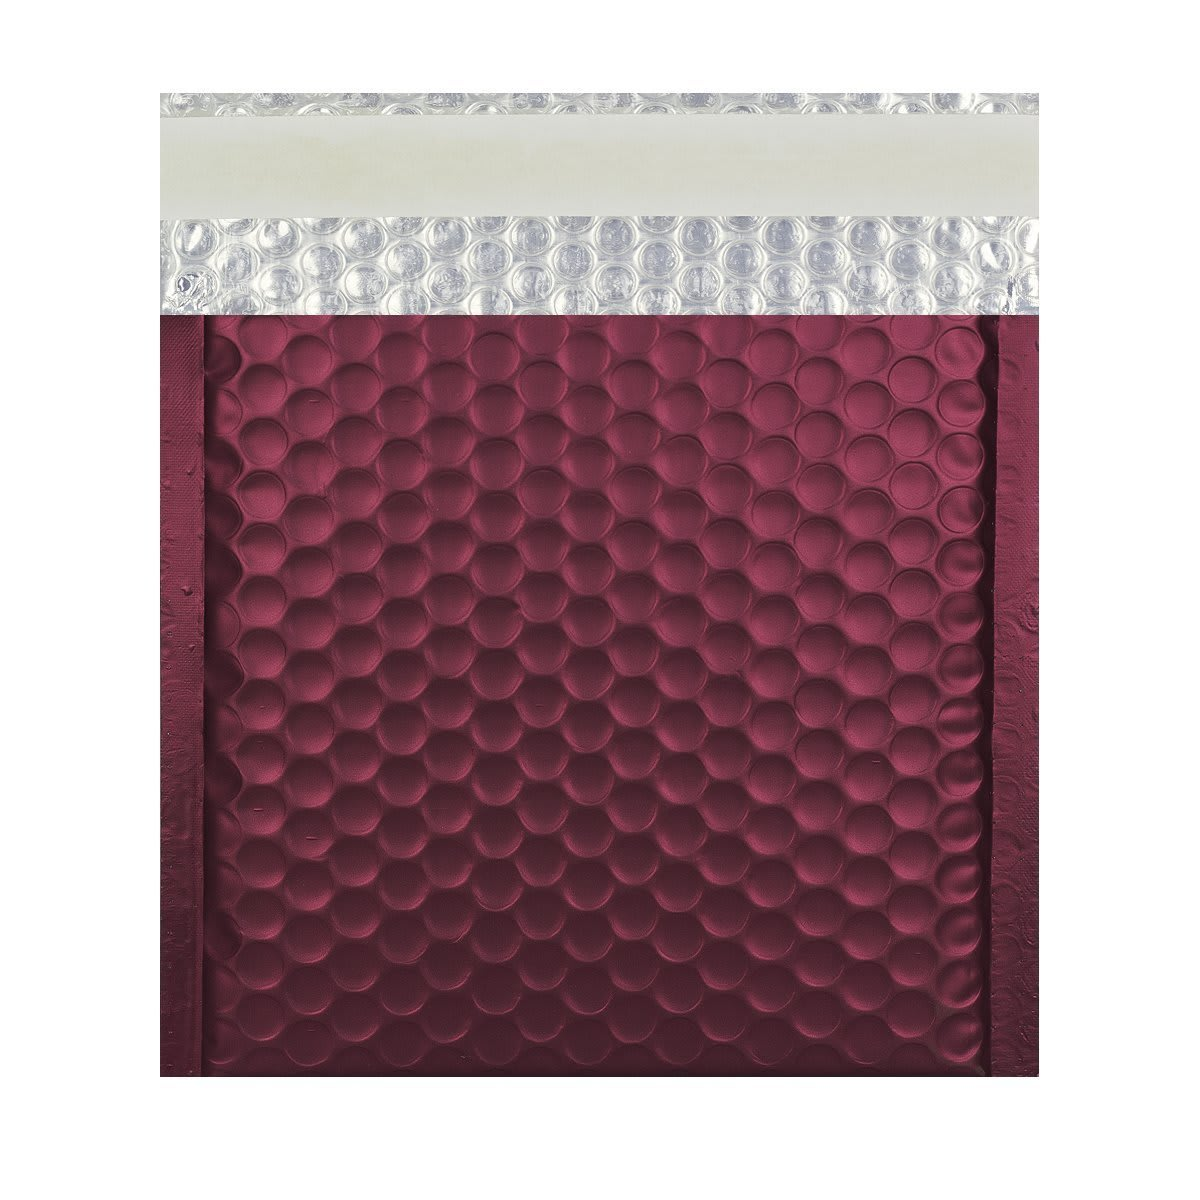 165MM SQUARE MATT METALLIC BURGUNDY PADDED ENVELOPES